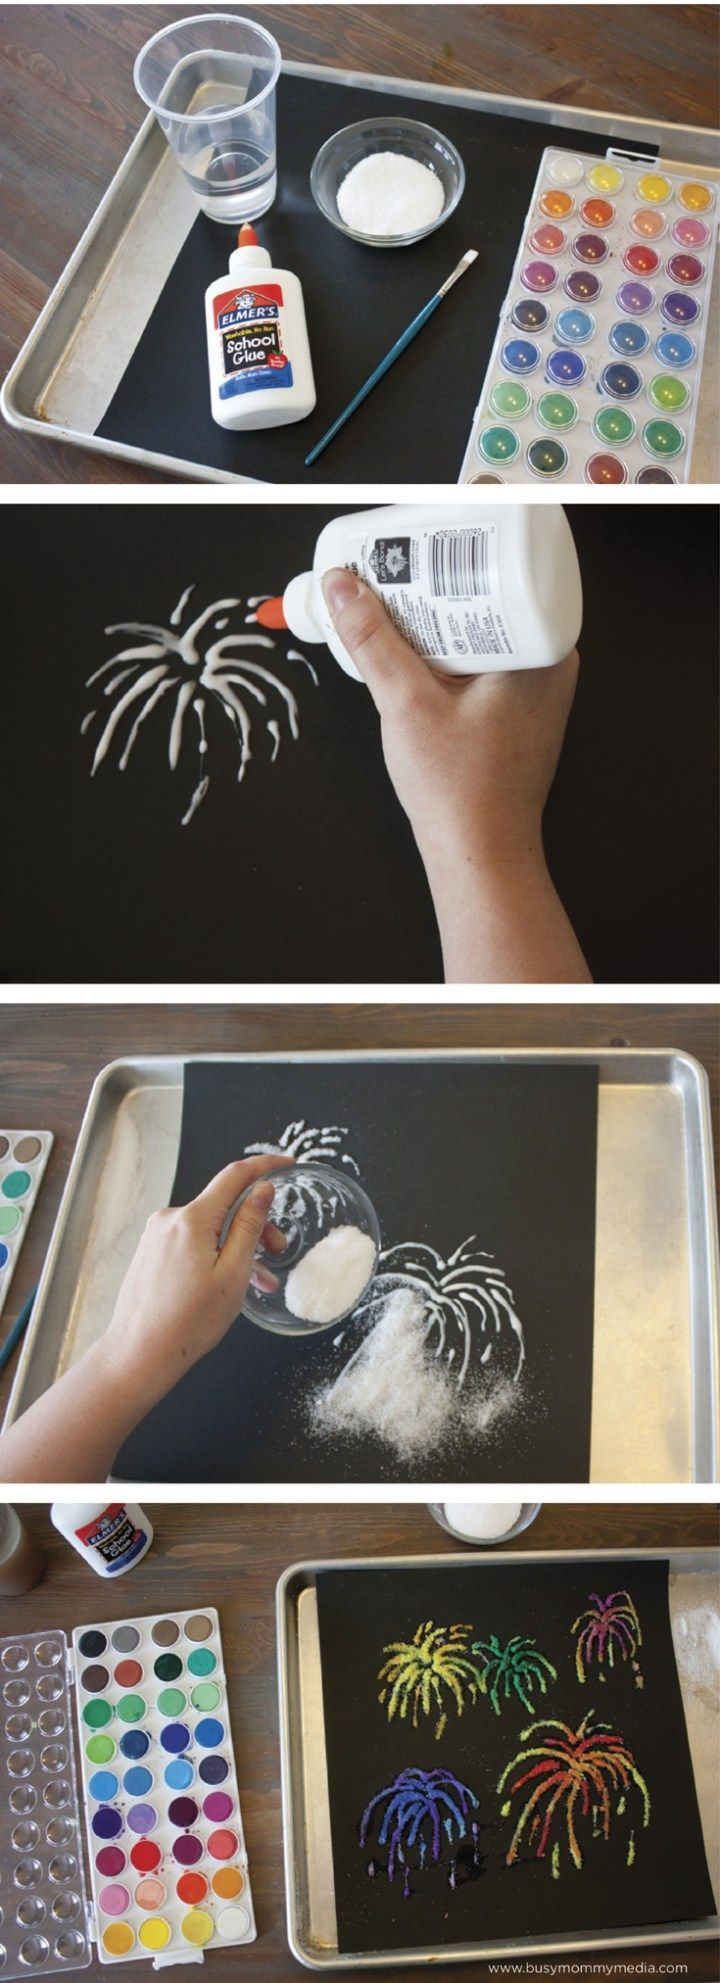 Firework Salt Art. Cool art project for kids! I love that it uses stuff I already have on hand. This would be awesome for the 4th of July or a rainy day activity!